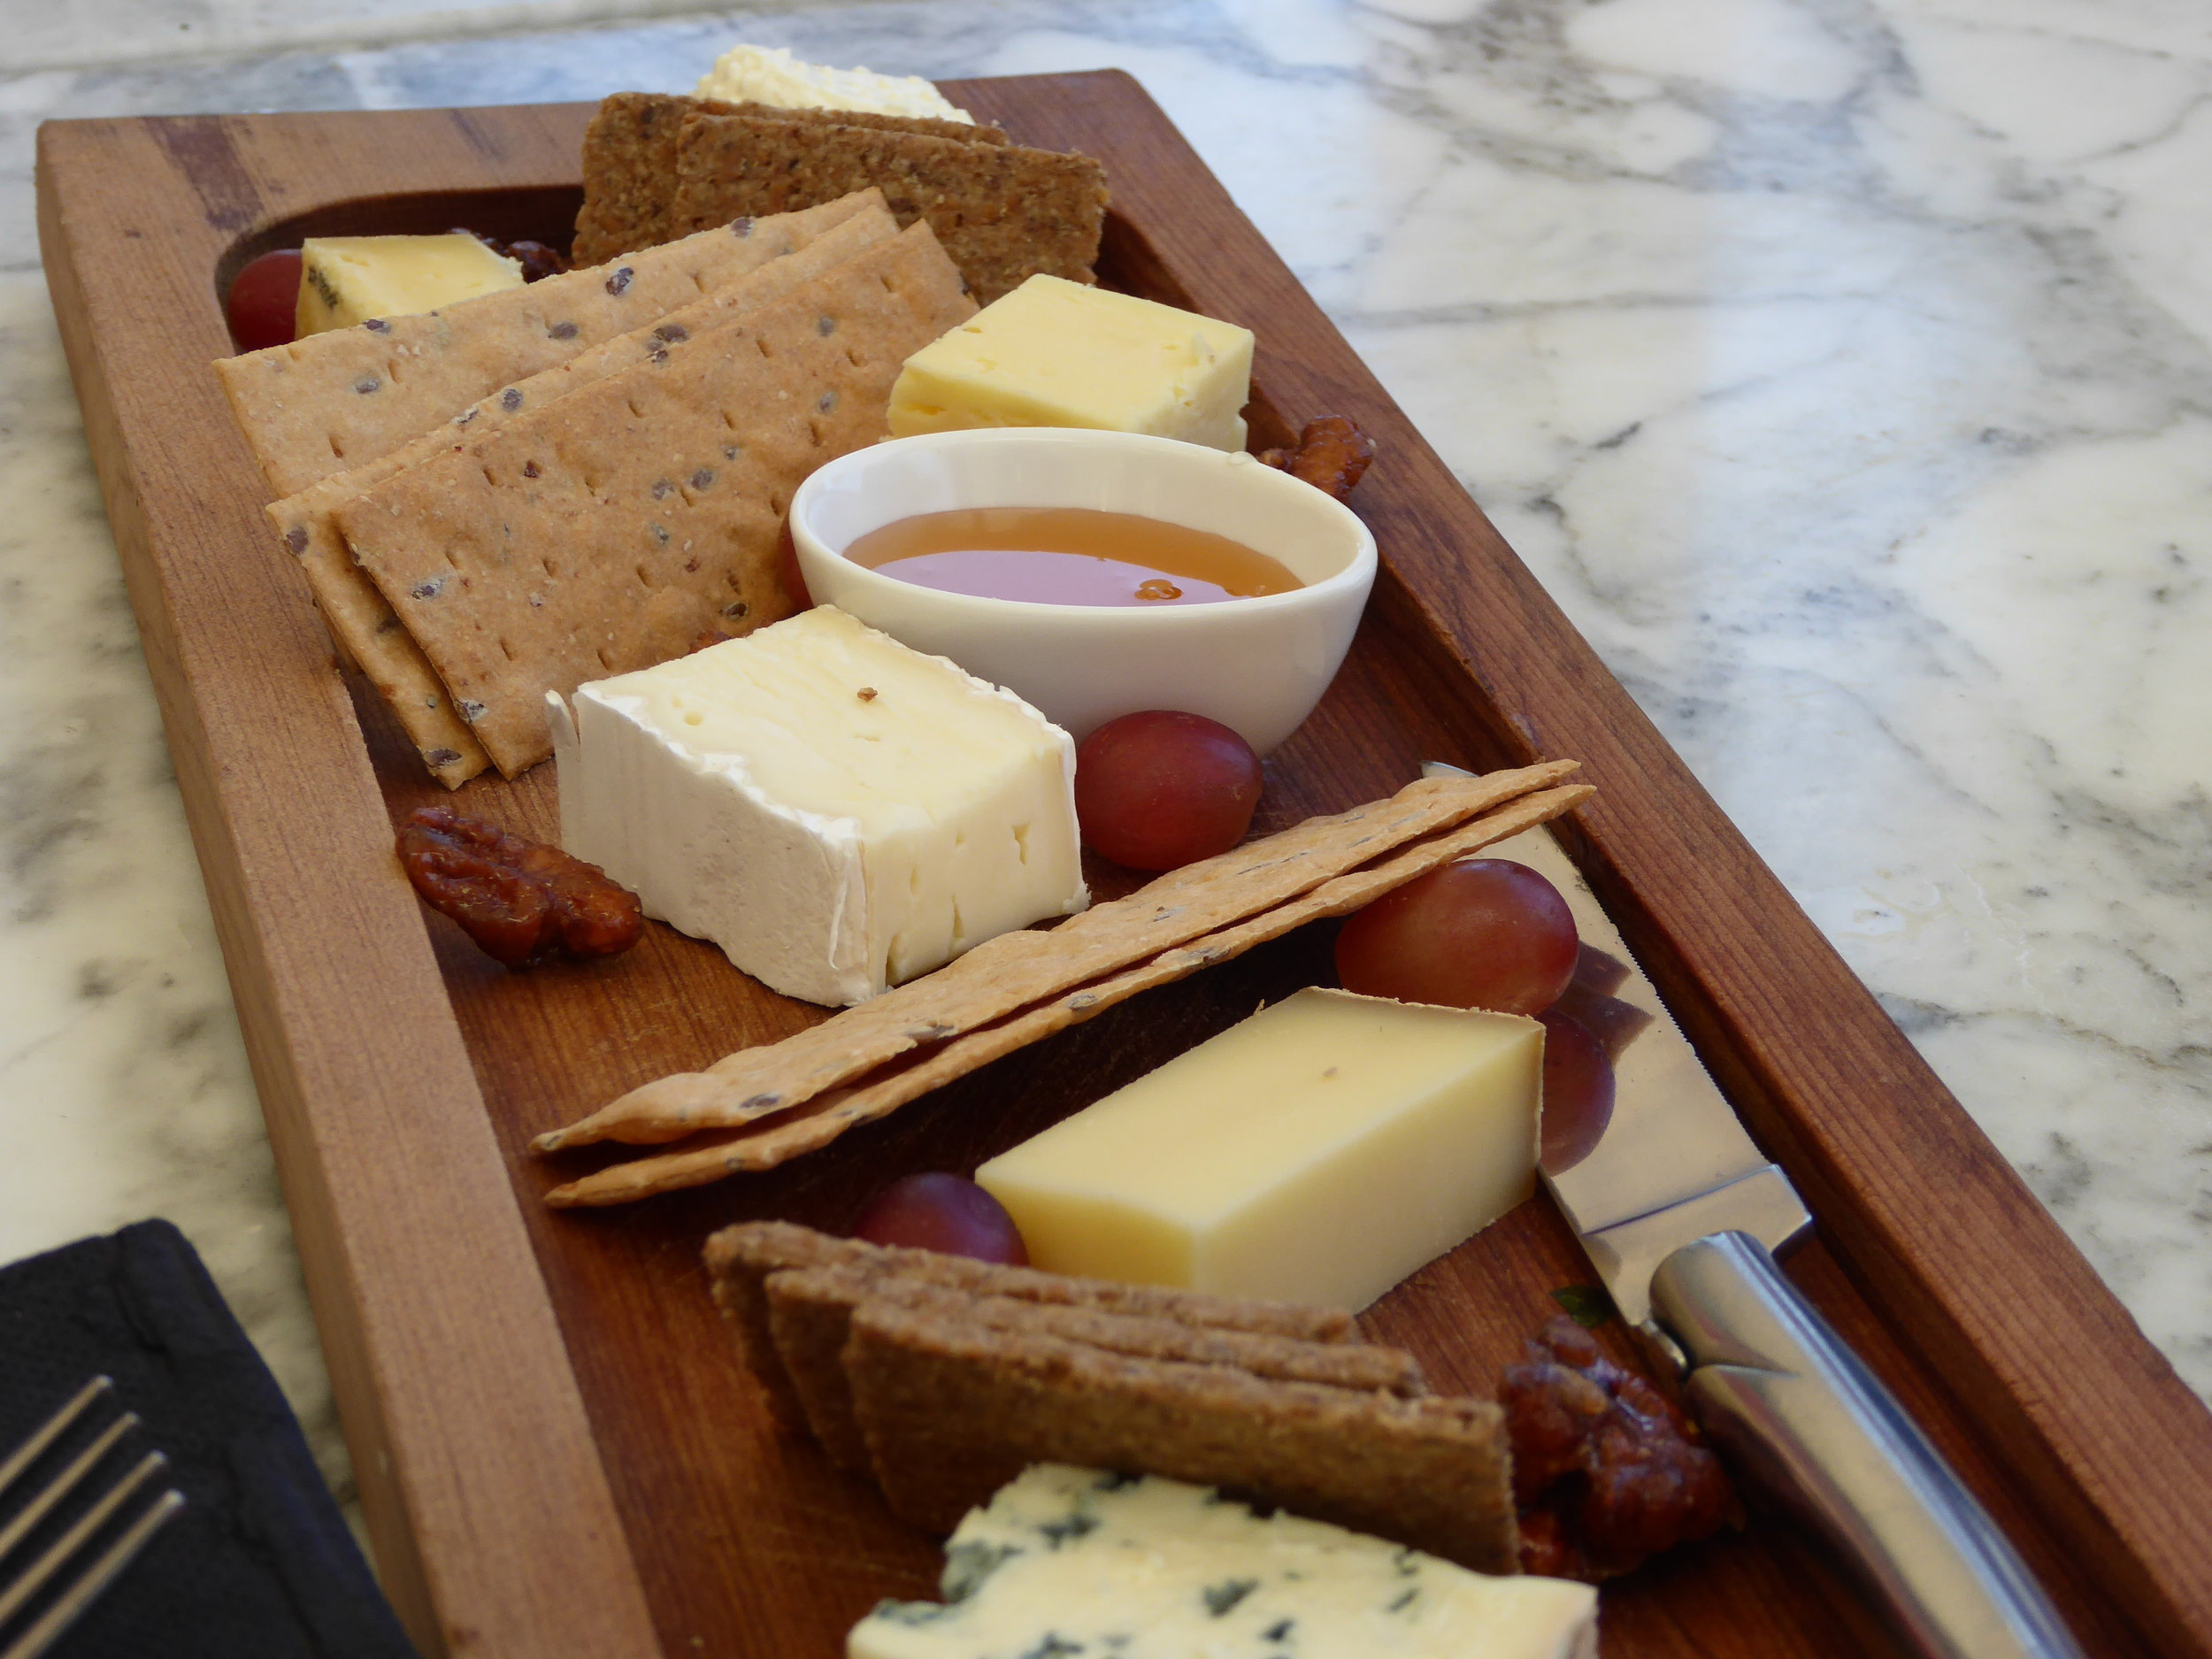 A selection of cheeses with New Zealand's famous Manuka Honey.